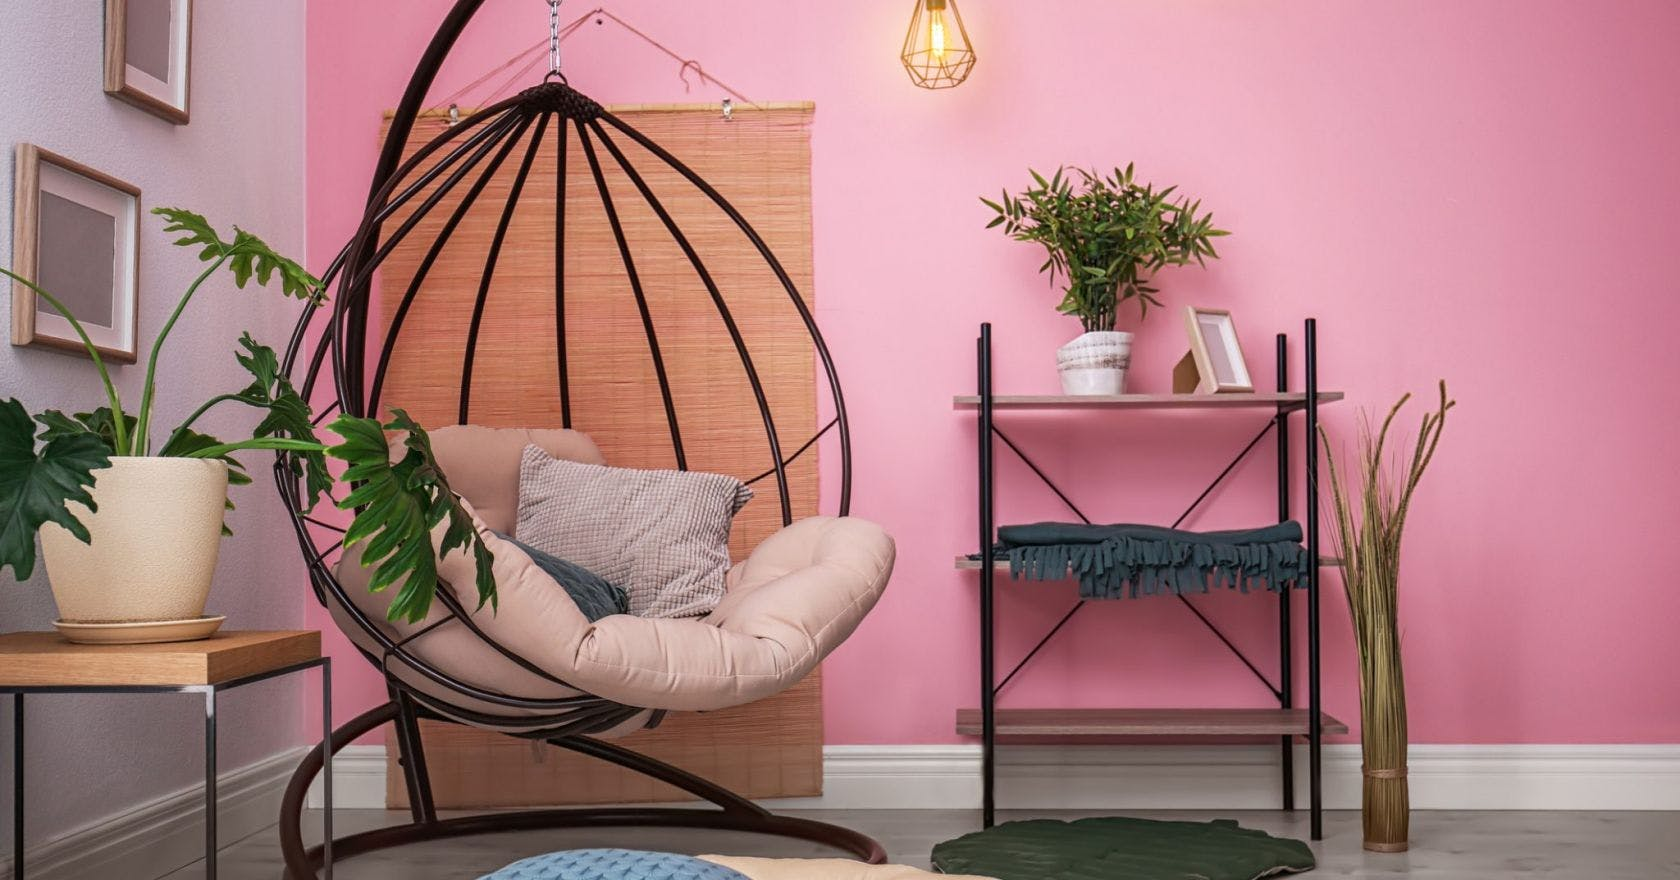 Hanging Egg Chairs Indoors And Outdoors For Summer